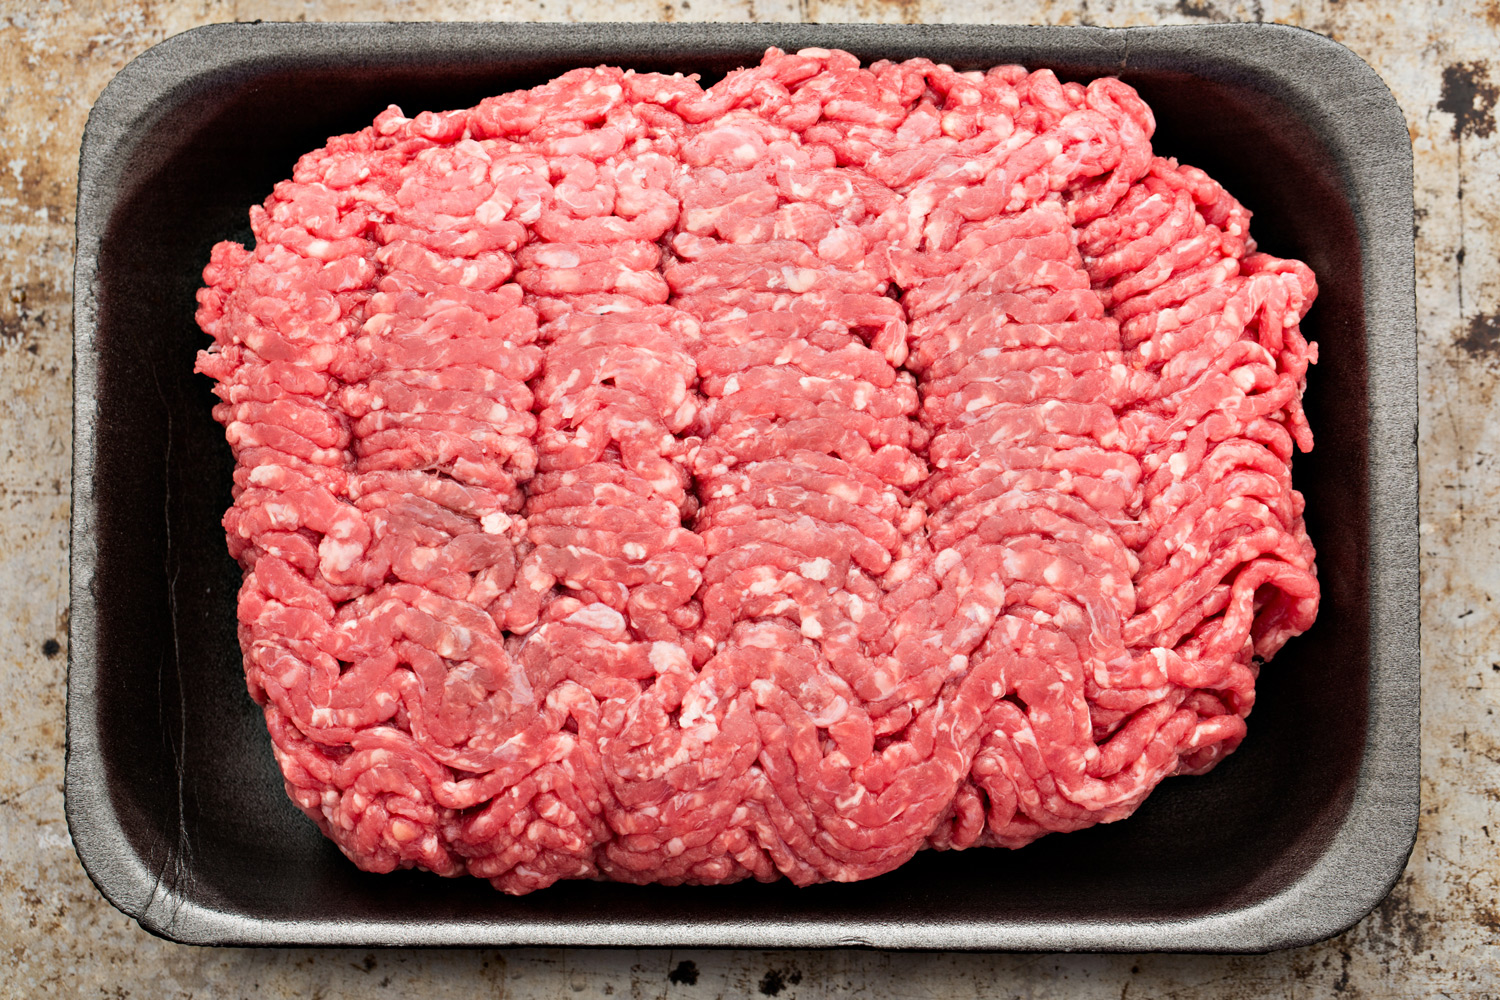 More Than 167,000 Pounds Of Ground Beef Recalled For E. Coli